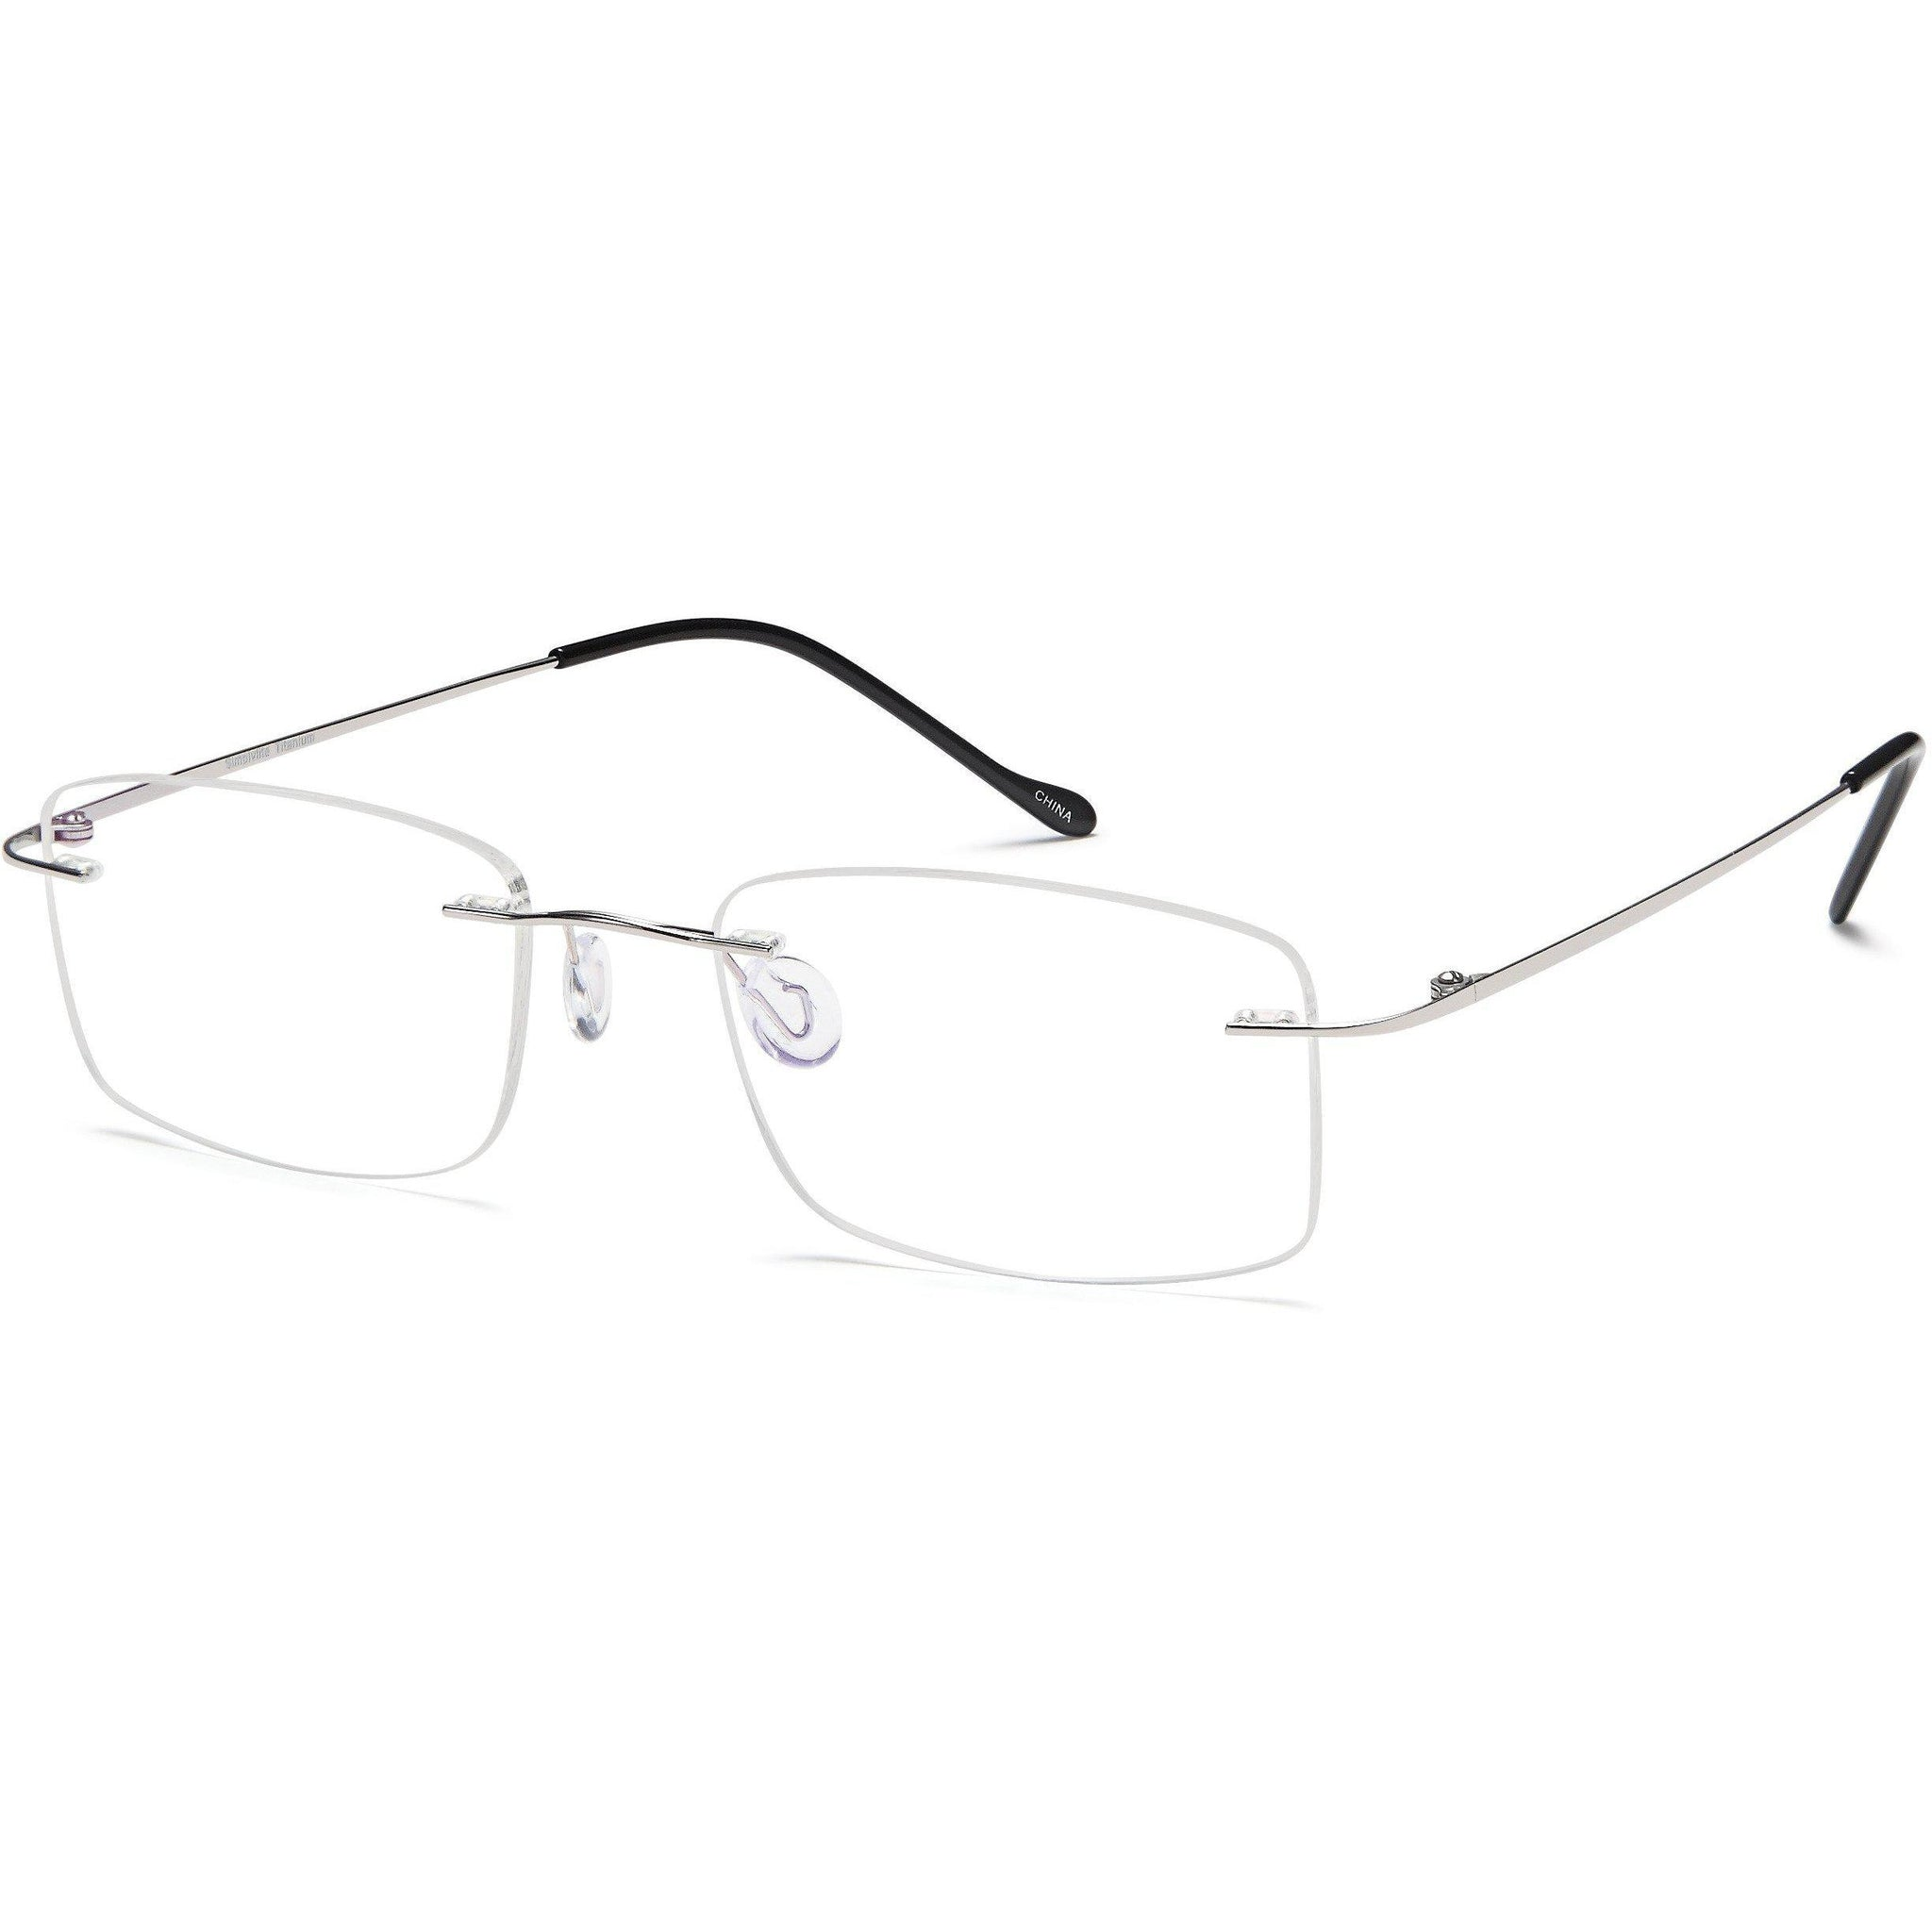 Feather Prescription Glasses SL 701 Eyeglasses Frames